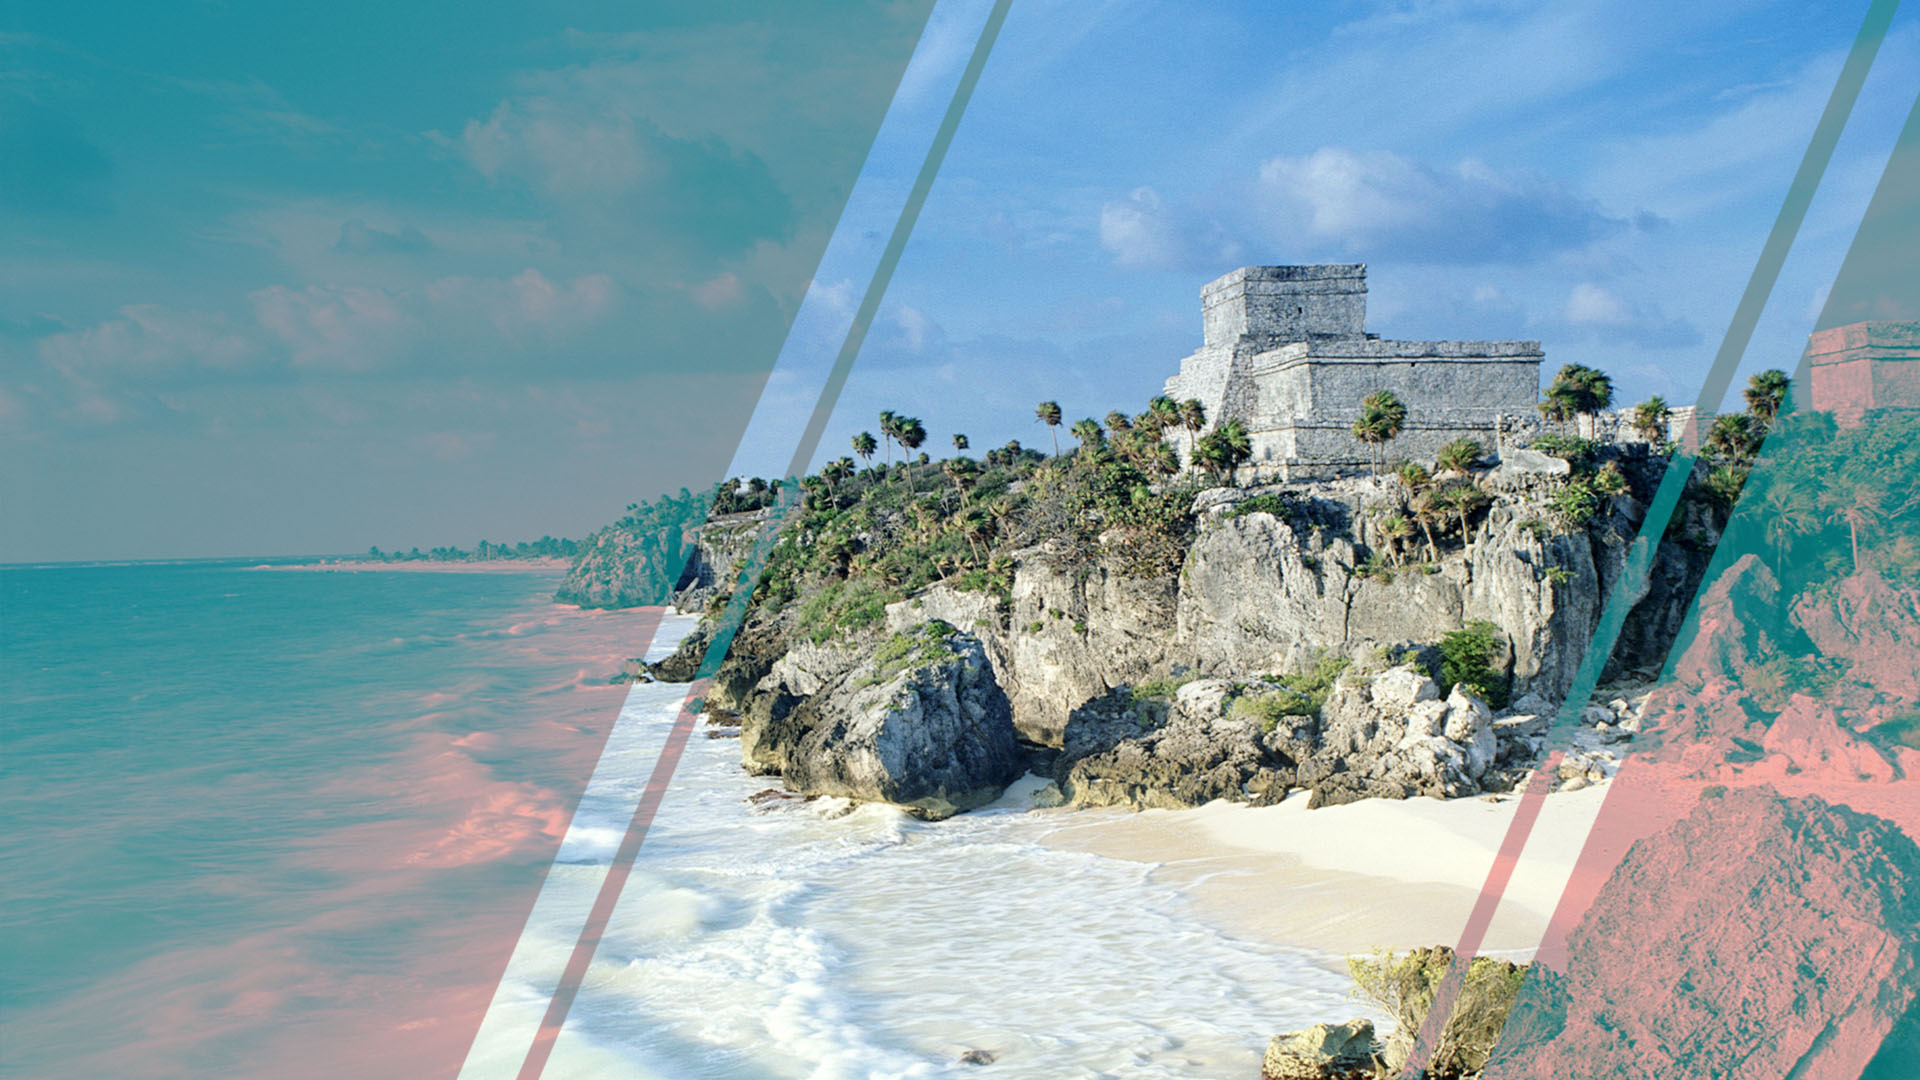 10 reasons to live in Mexico